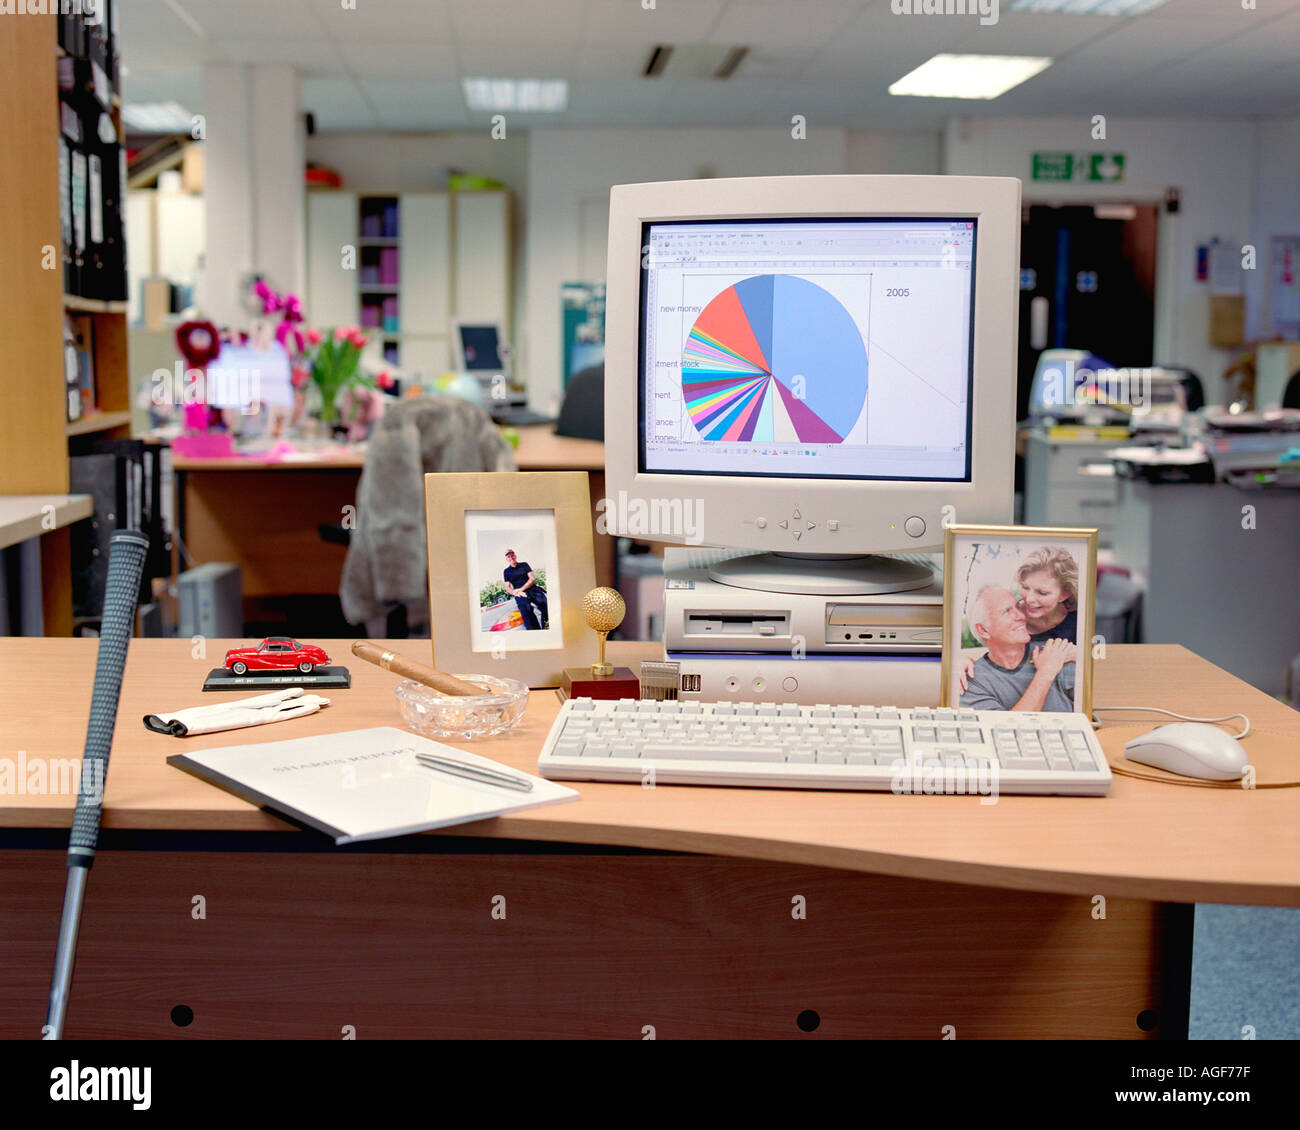 Masculine objects on desk - Stock Image